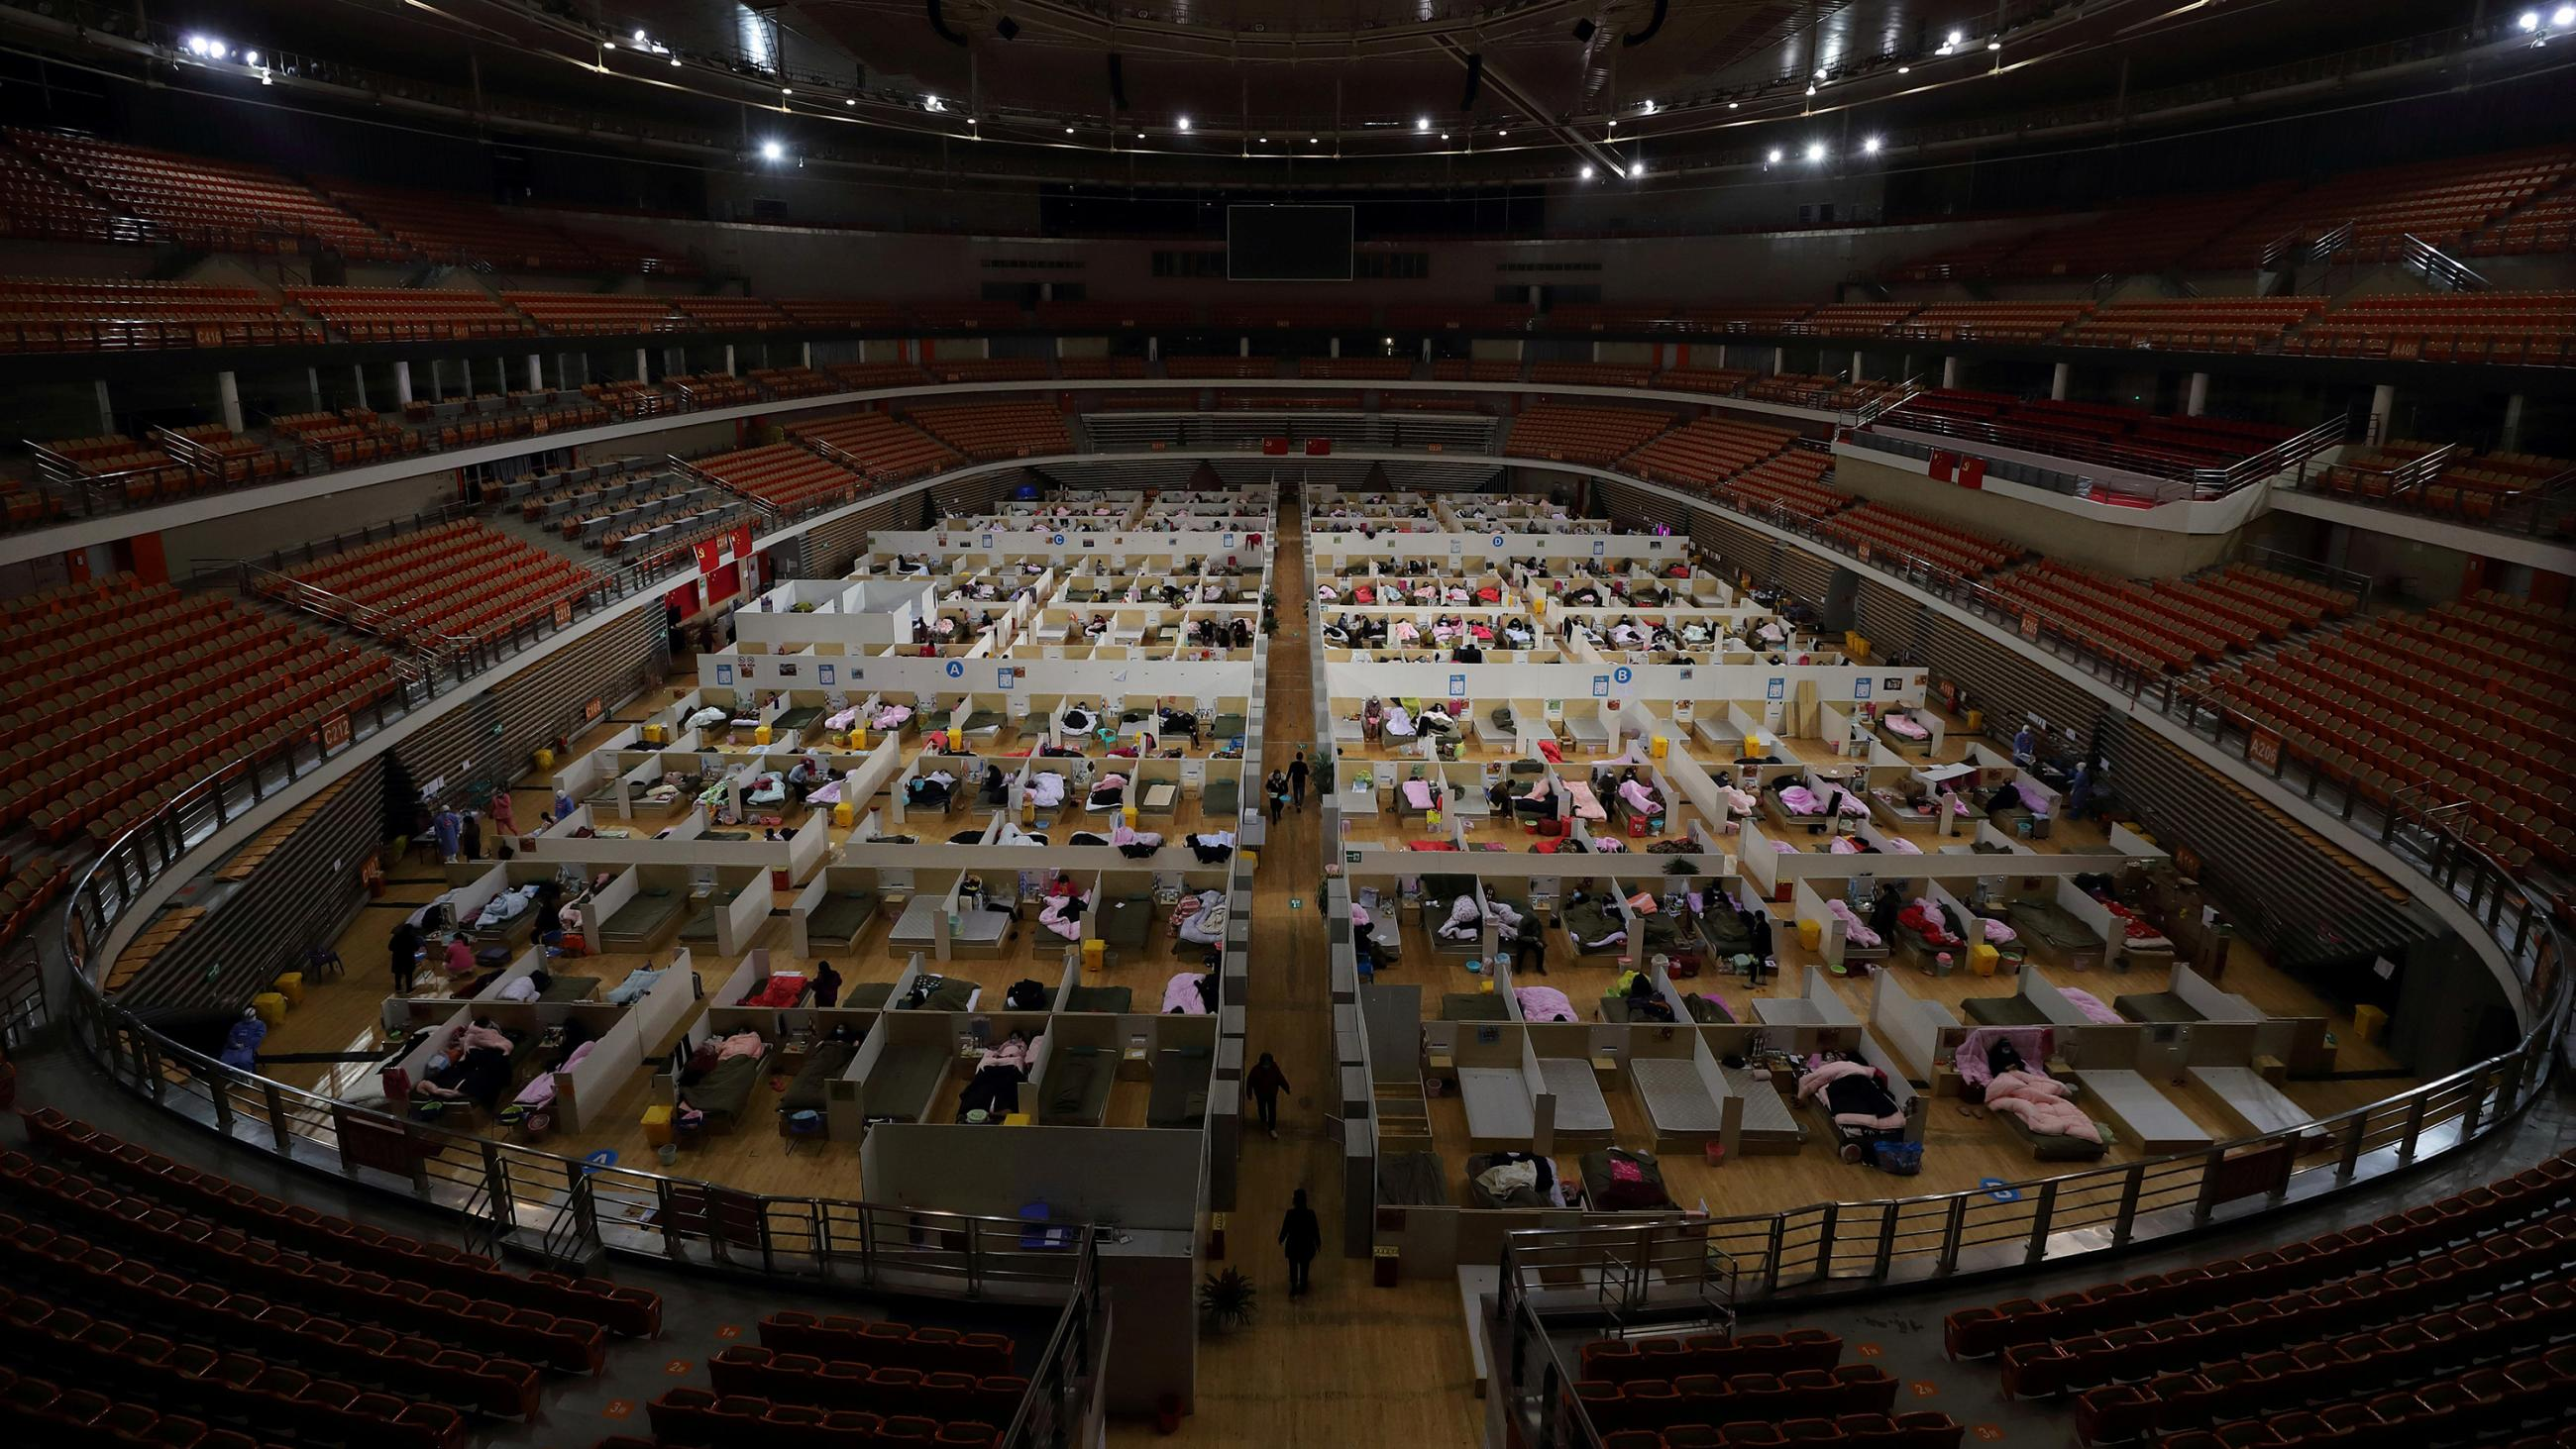 Picture shows a stadium with empty seats and a floor packed with patients resting on mats.